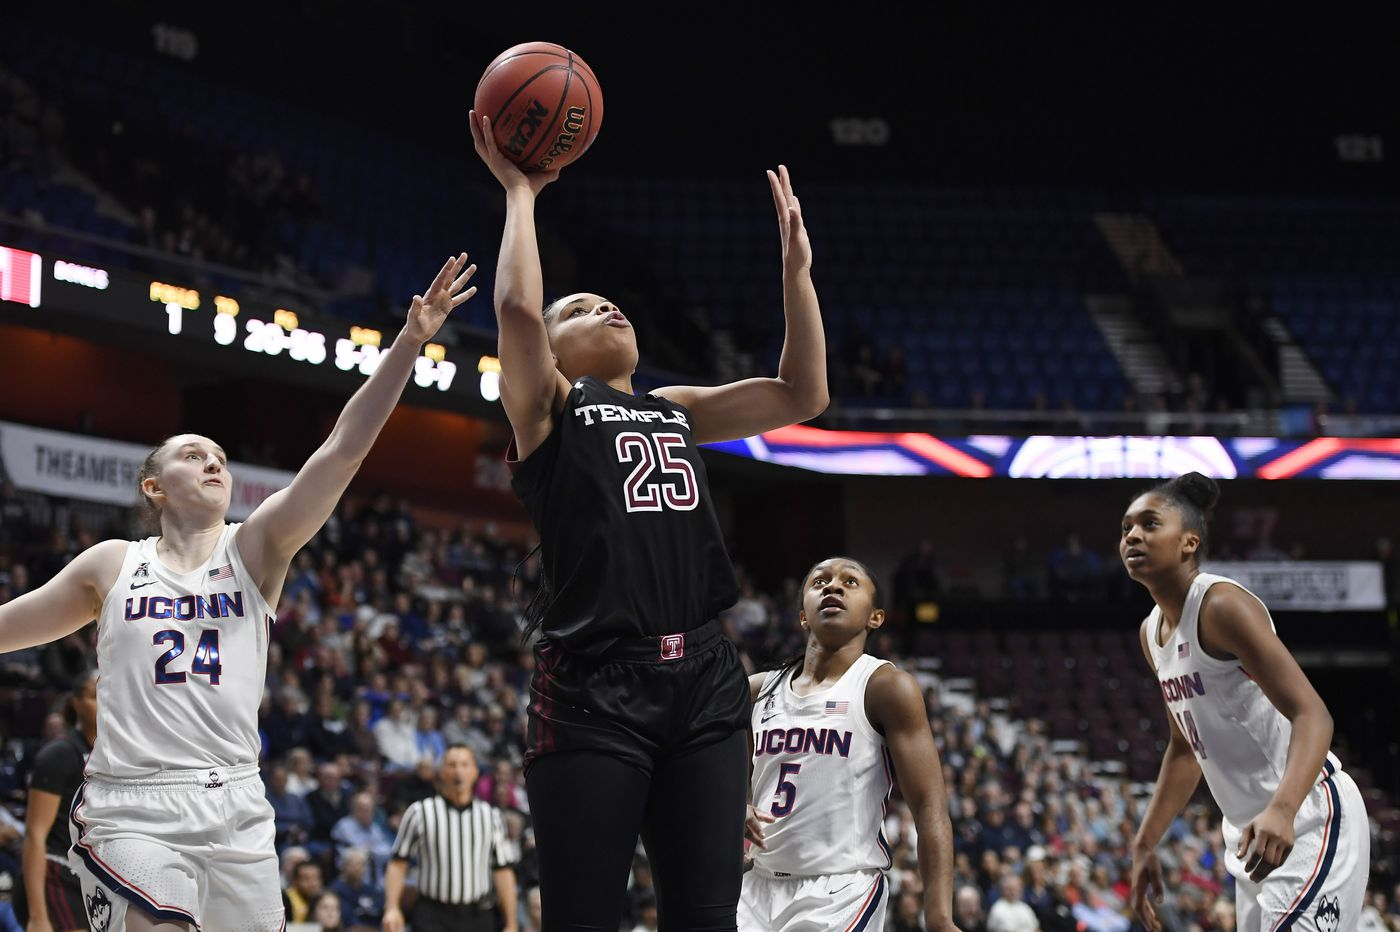 Temple's Mia Davis named Big 5 player of the year; Villanova's Harry Perretta earns coach of the year honors